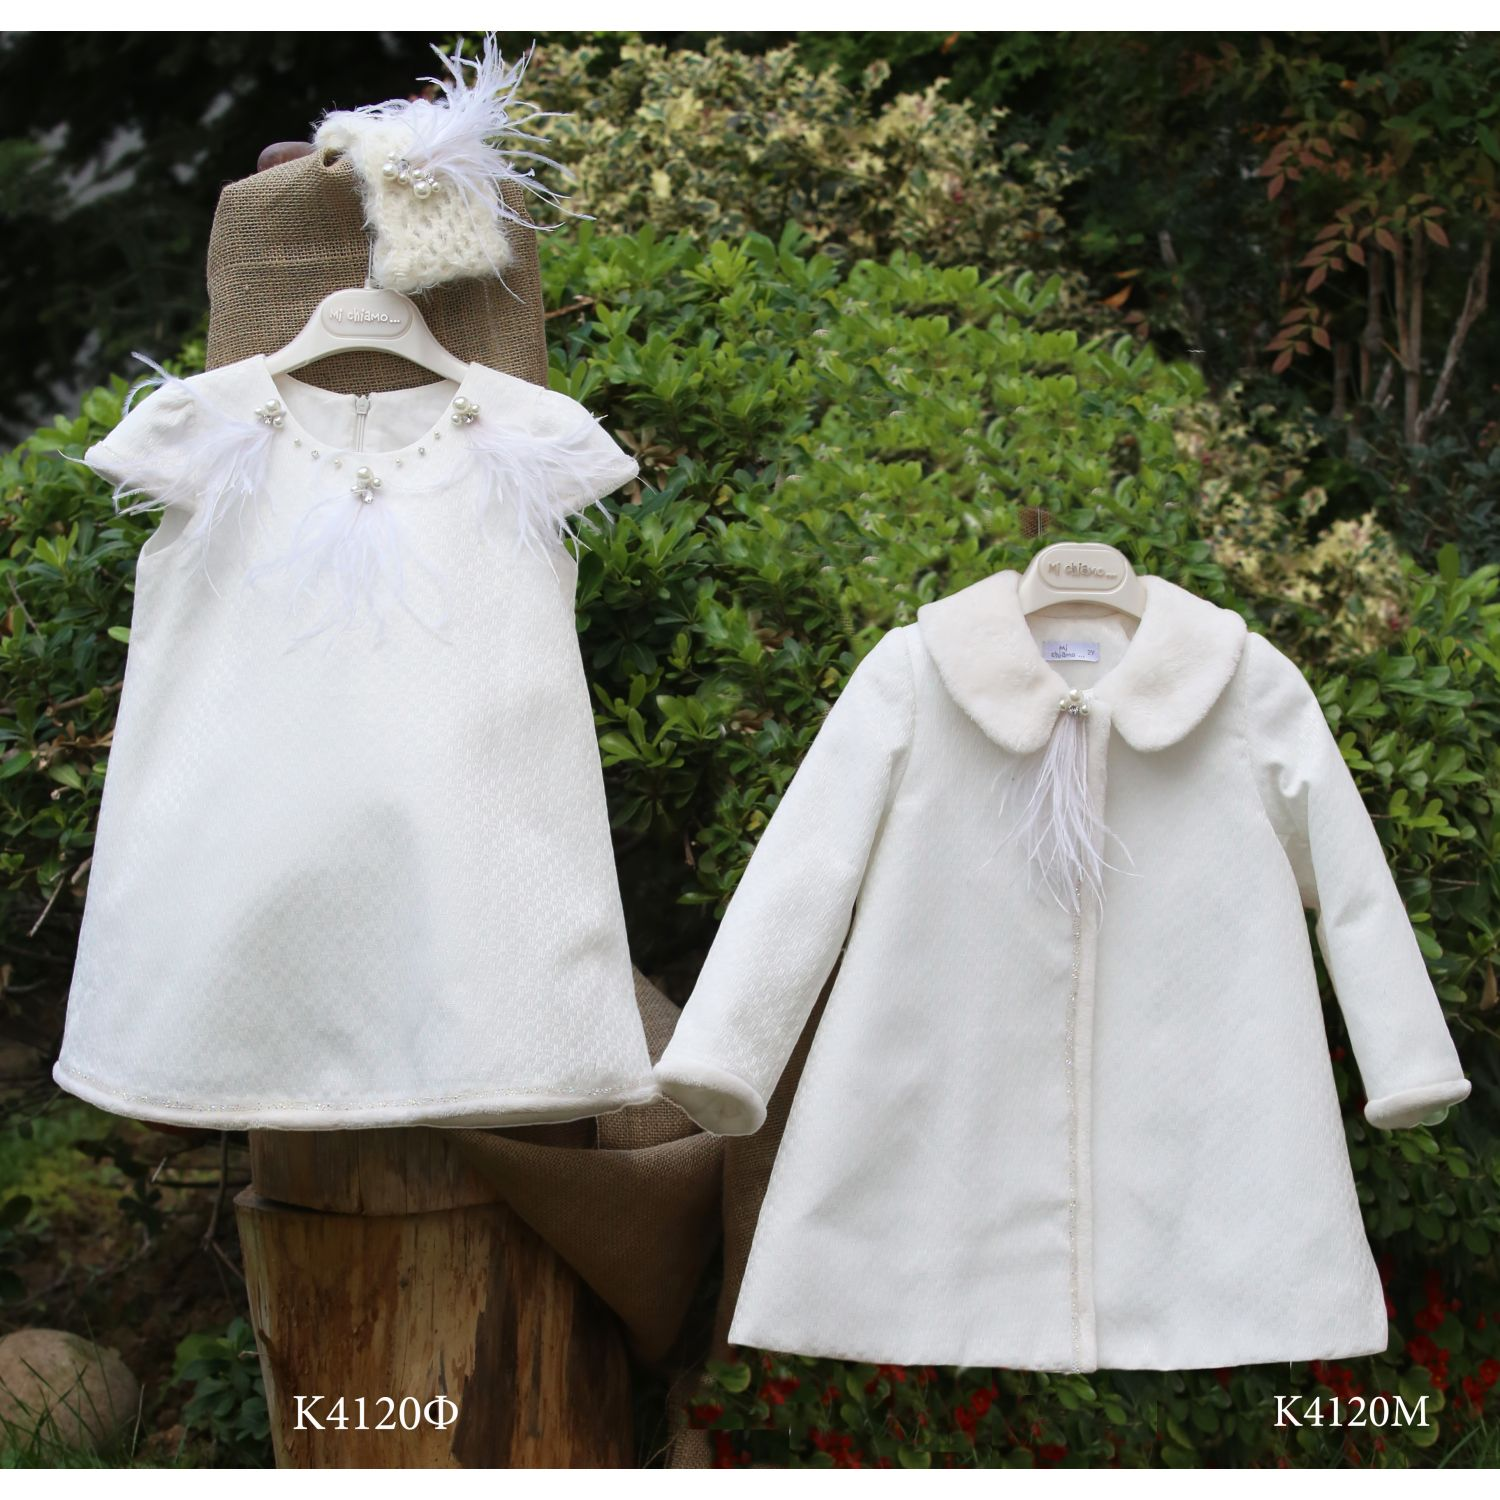 Winter christening clothes for girl K4120